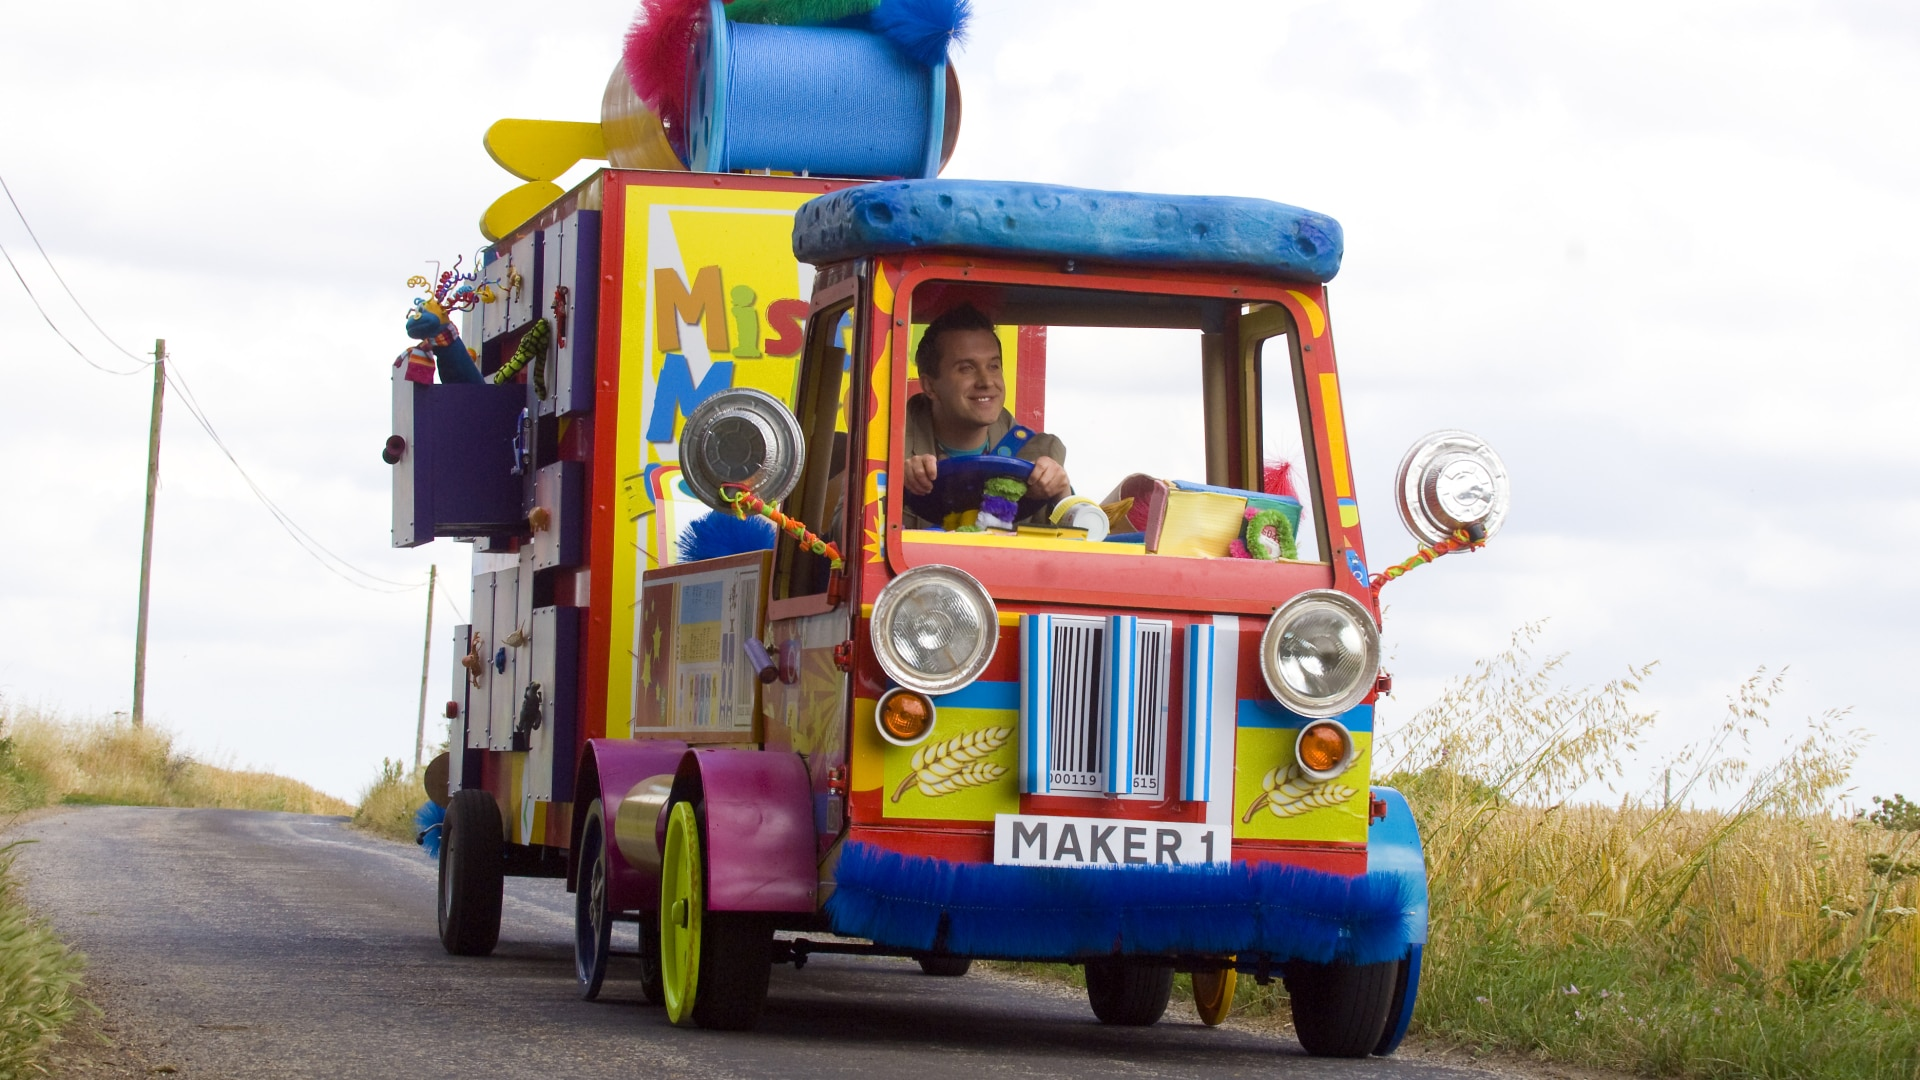 Mister Maker Comes To Town 26